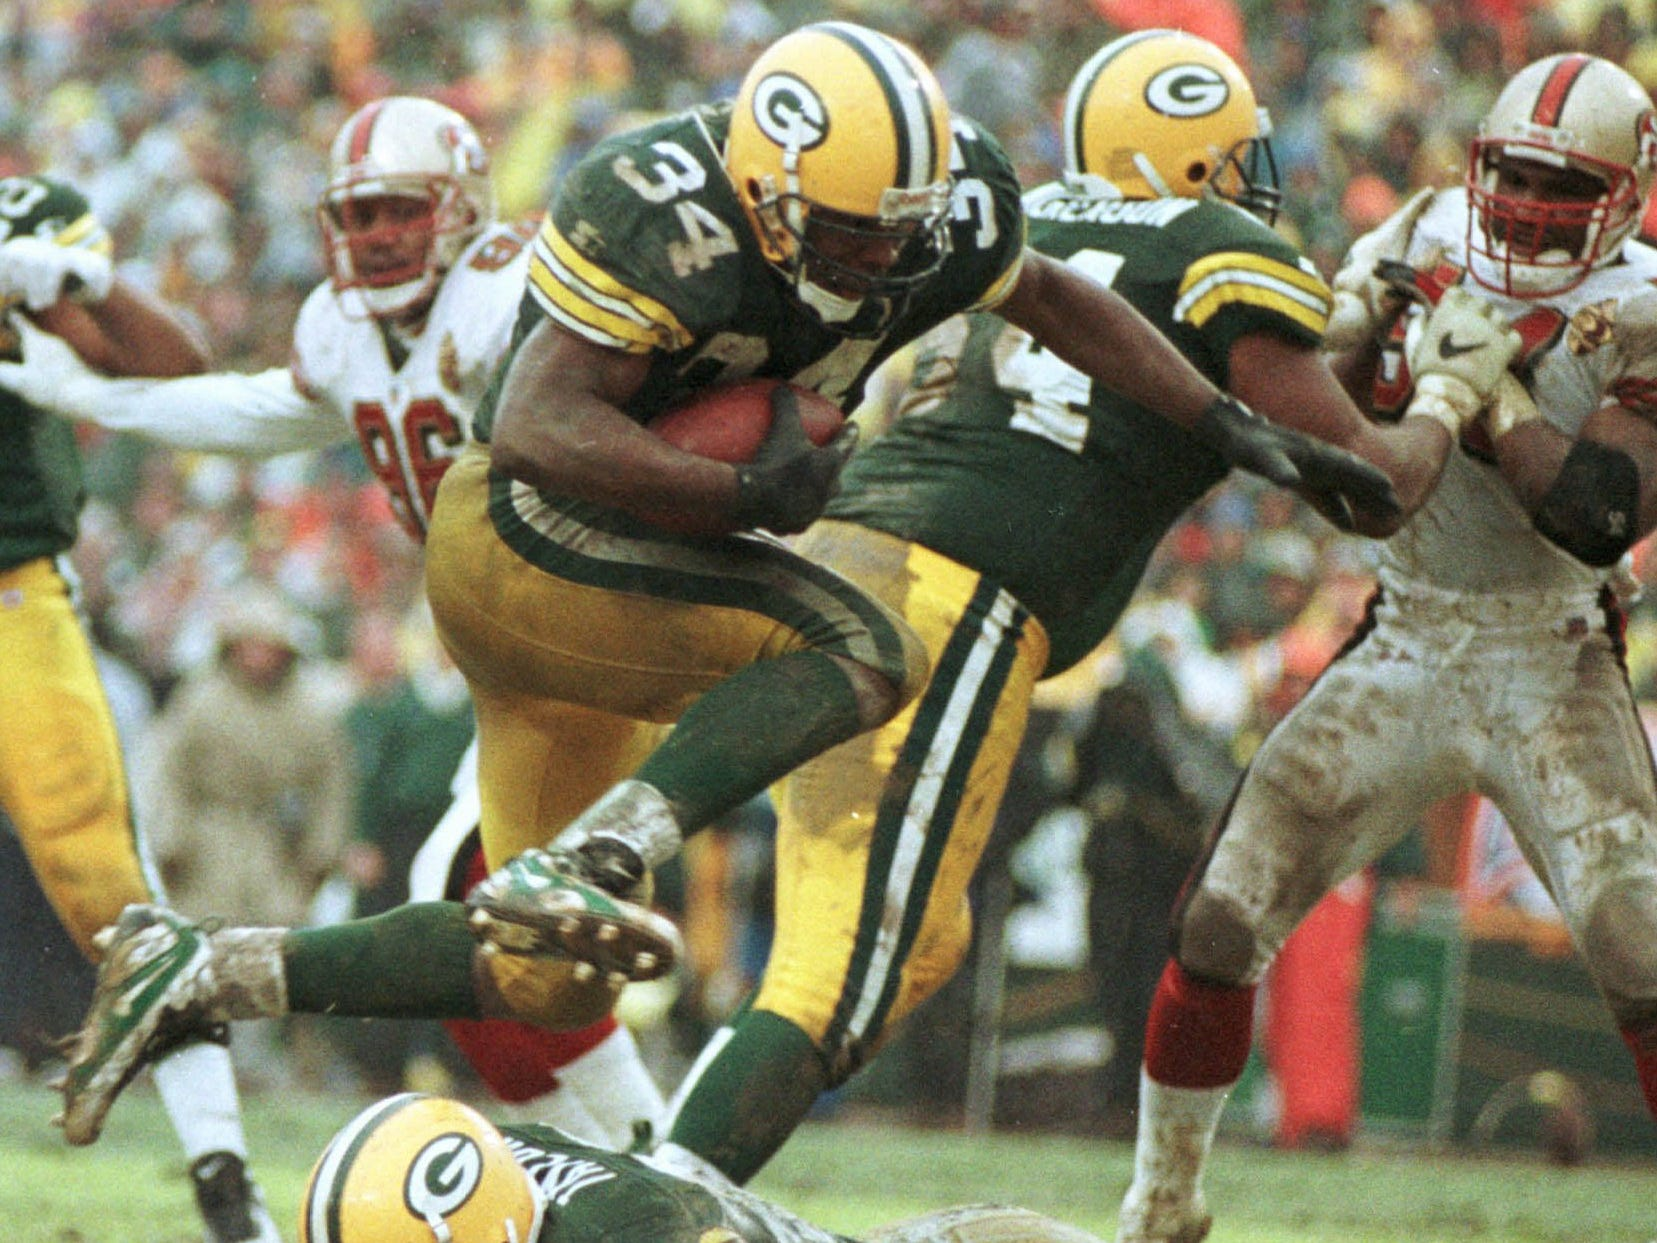 Jan. 4, 1997: Green Bay Packers running back Edgar Bennett hurdles teammate Aaron Taylor for a touchdown in Green Bay's 35-14 win in an NFC divisional playoff game against the San Francisco 49ers at Lambeau Field.